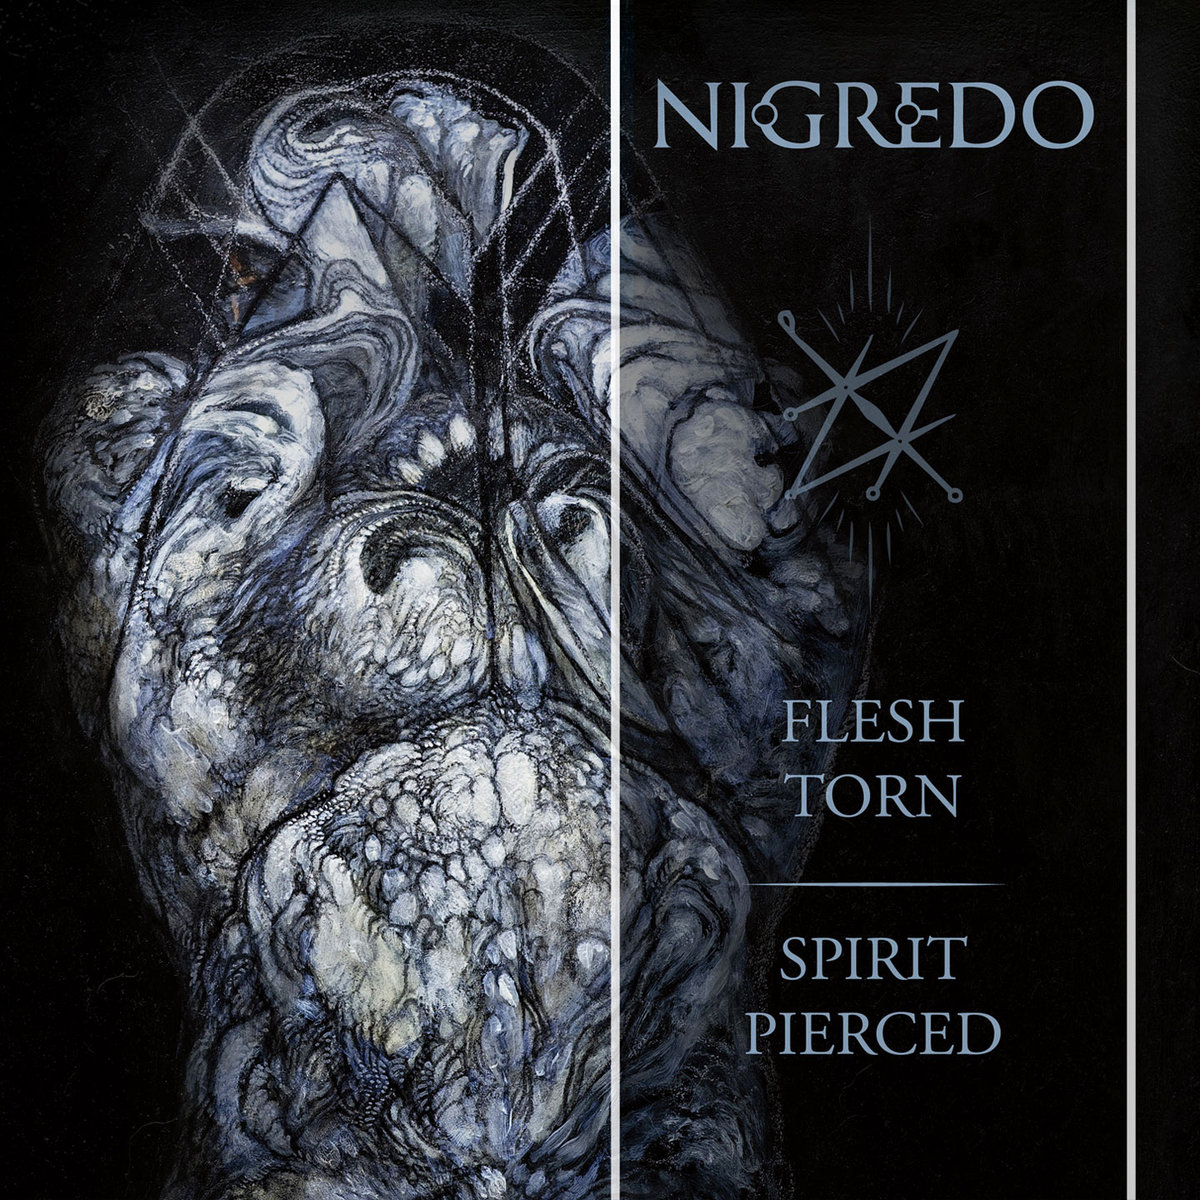 Nigredo (Greece) - 'Flesh Torn - Spirit Pierced' Limited Edition Digipak CD